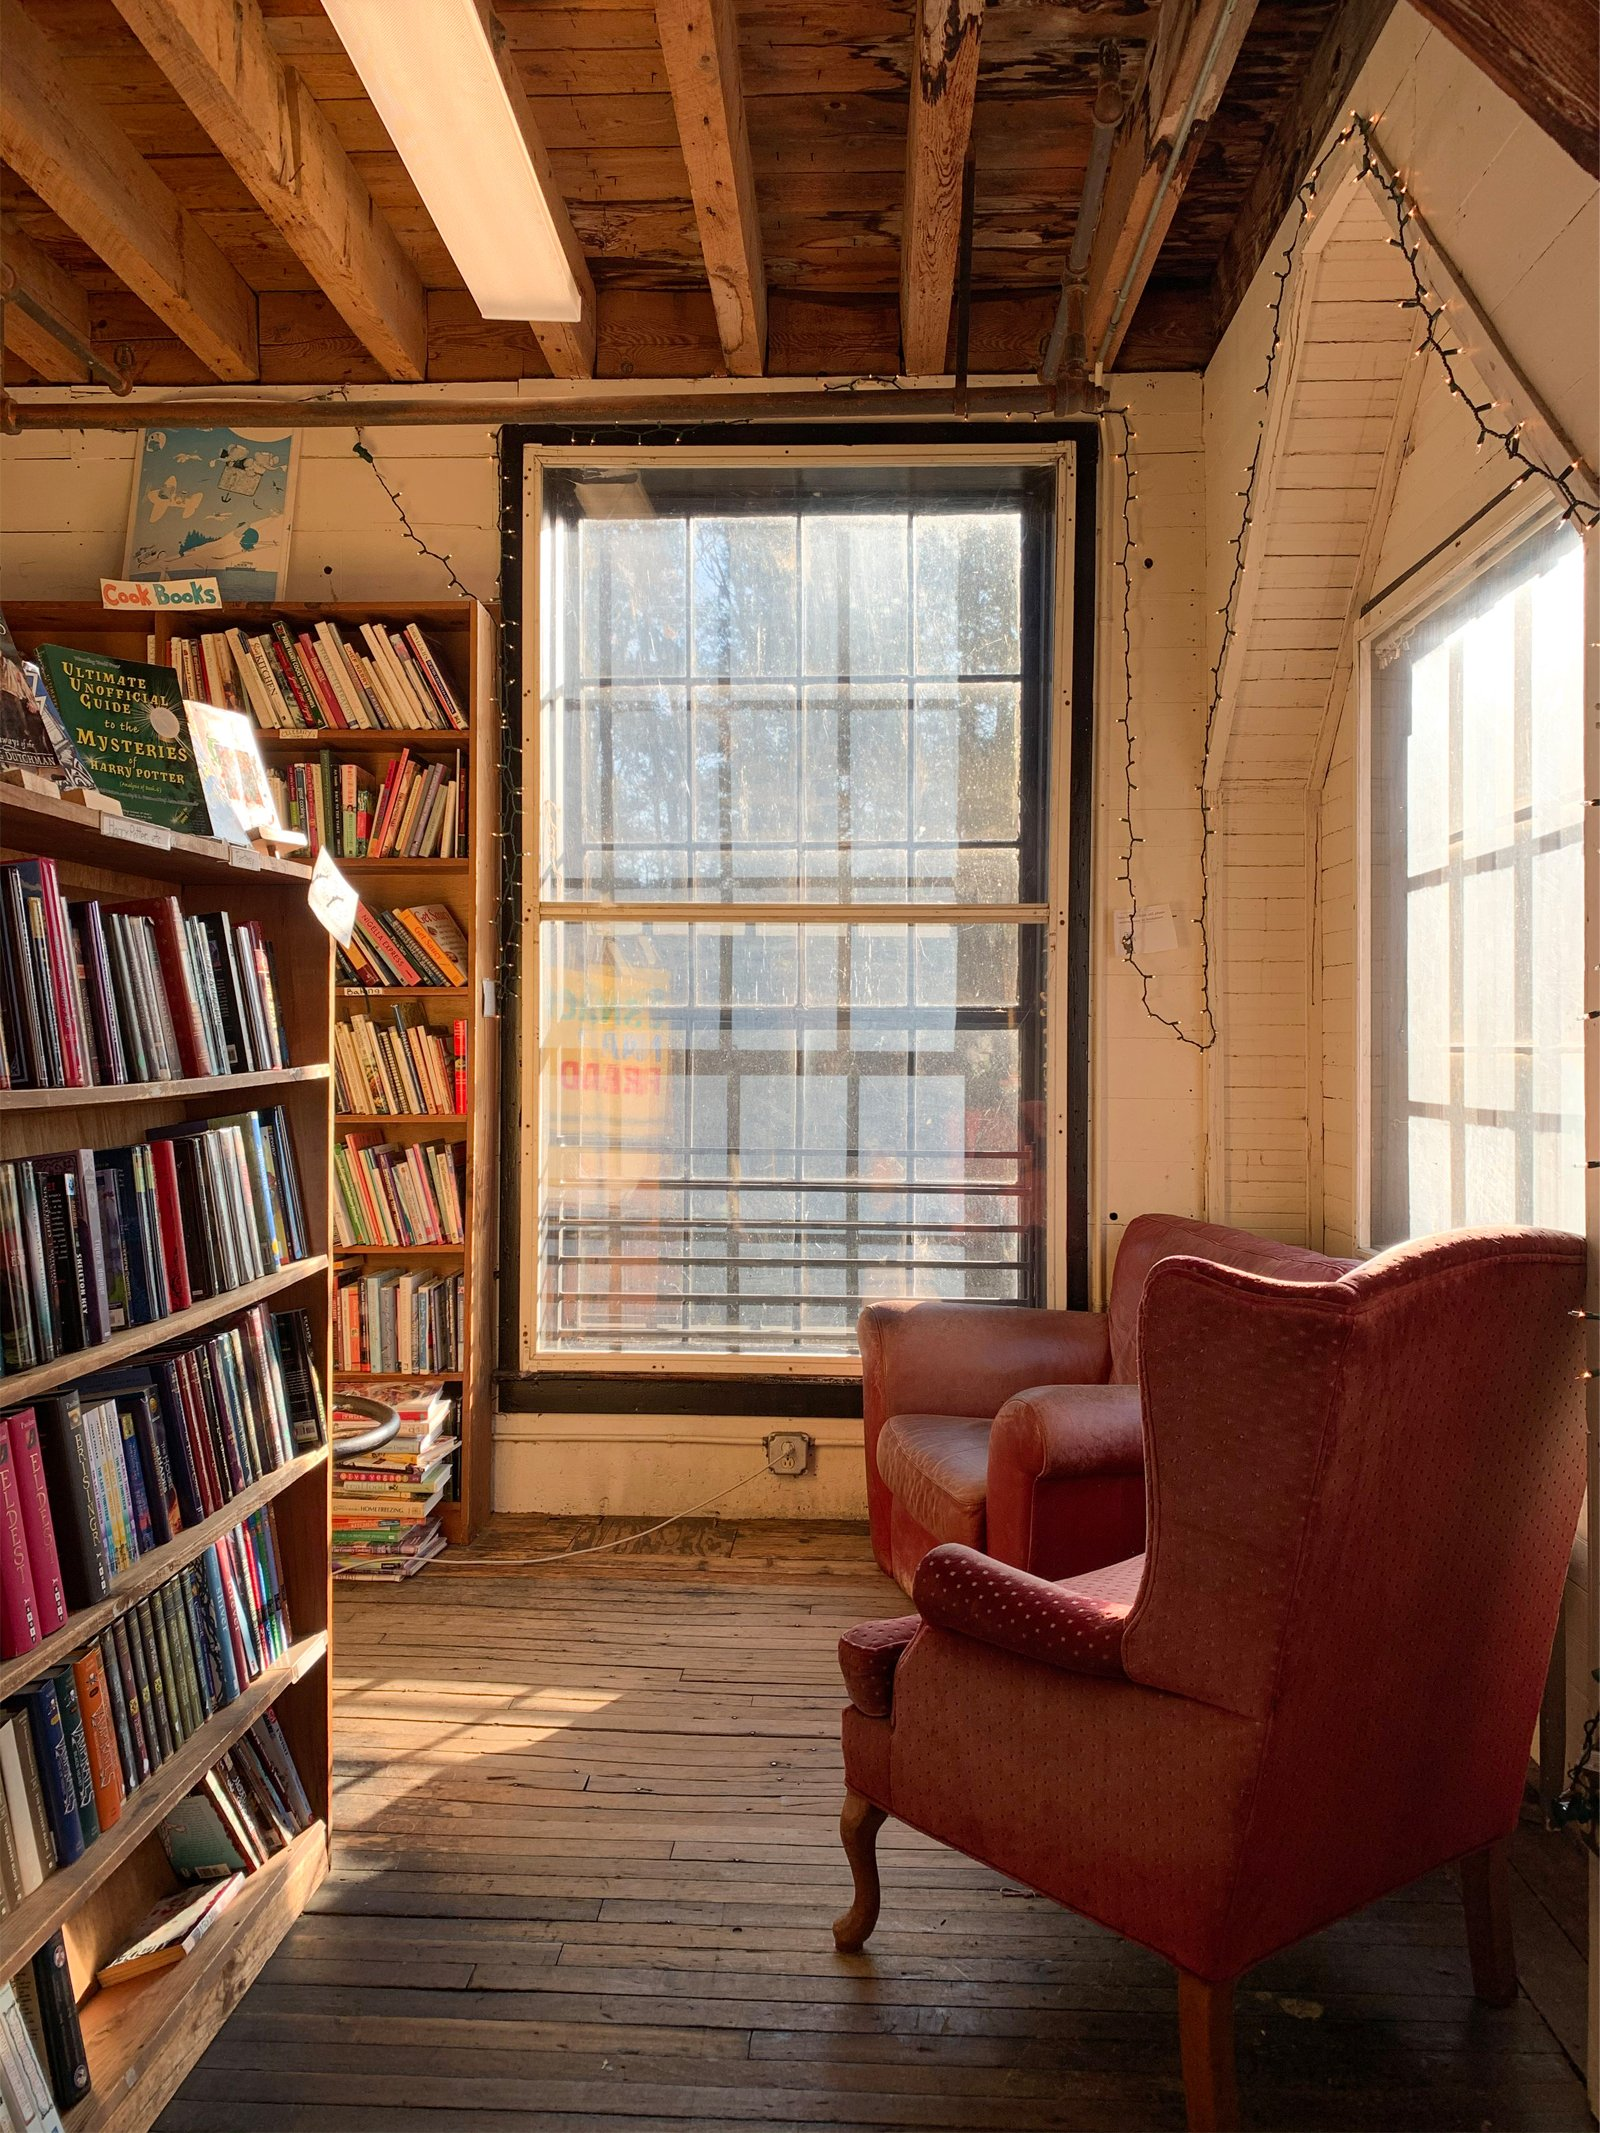 a cozy reading nook at the Montague Bookmill in Montague, MA